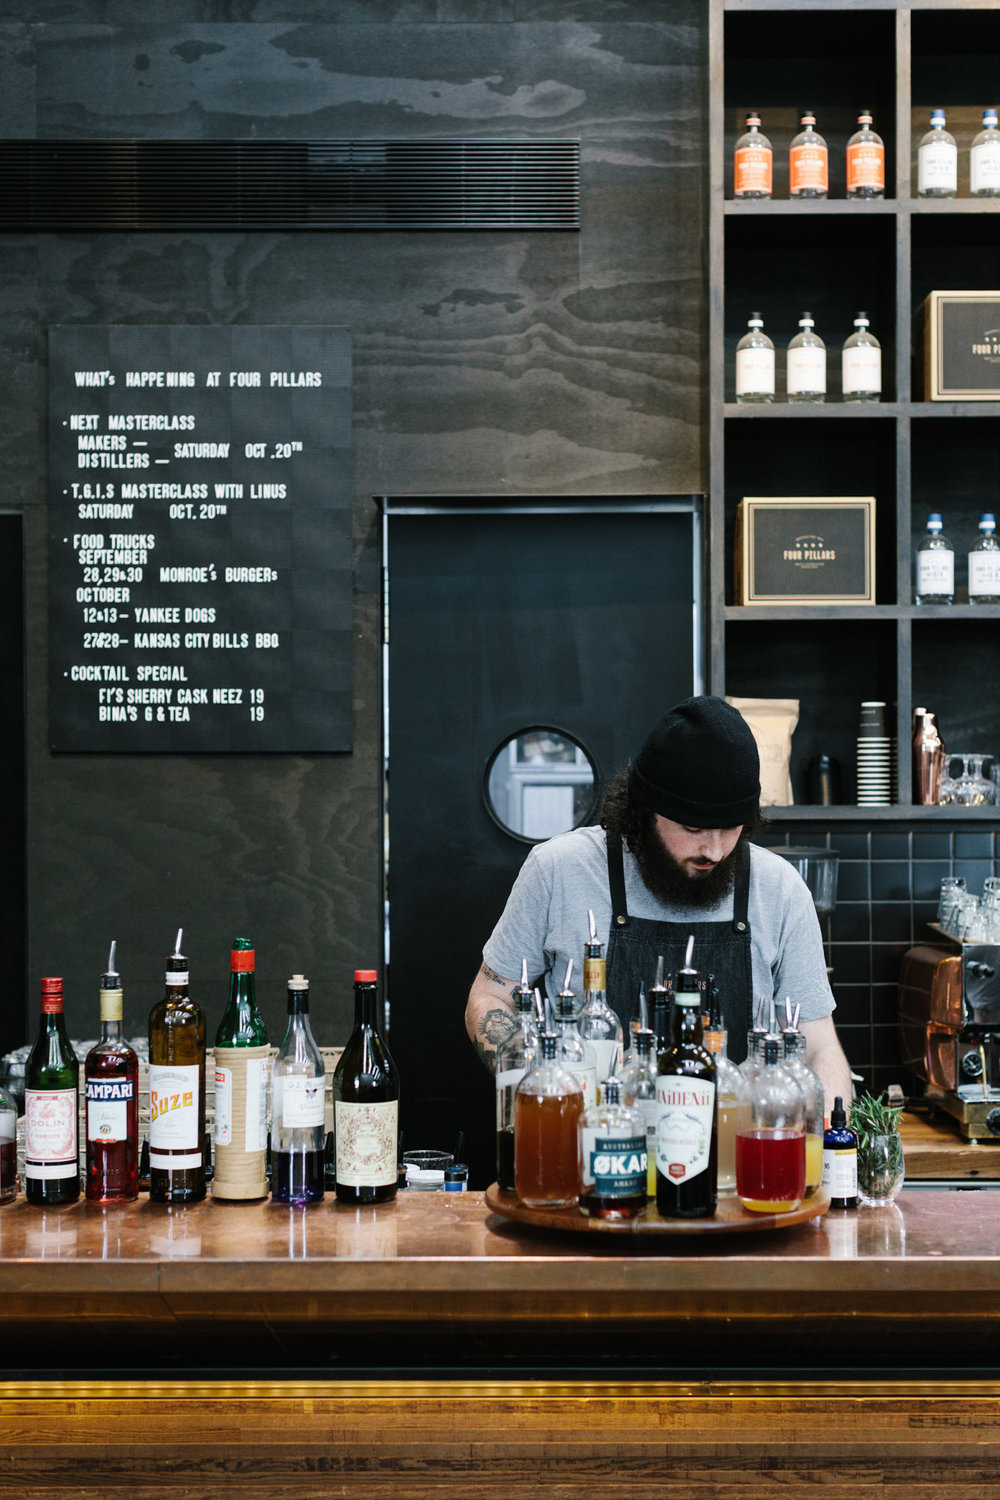 Marnie Hawson, Melbourne food photographer for Country Style magazine and Four Pillars Gin